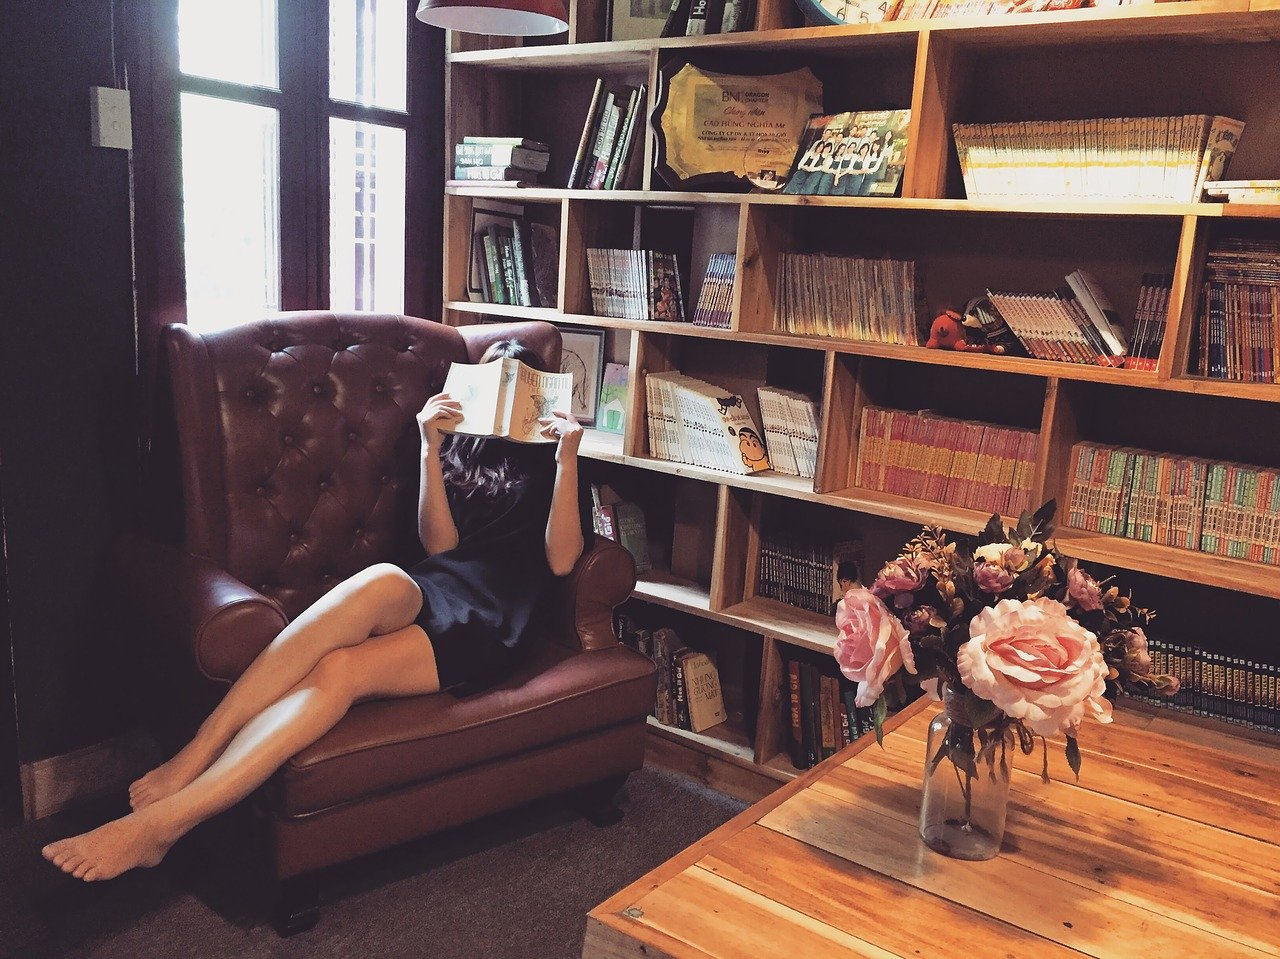 Make Reading More Pleasurable With These Home Library Must-Haves